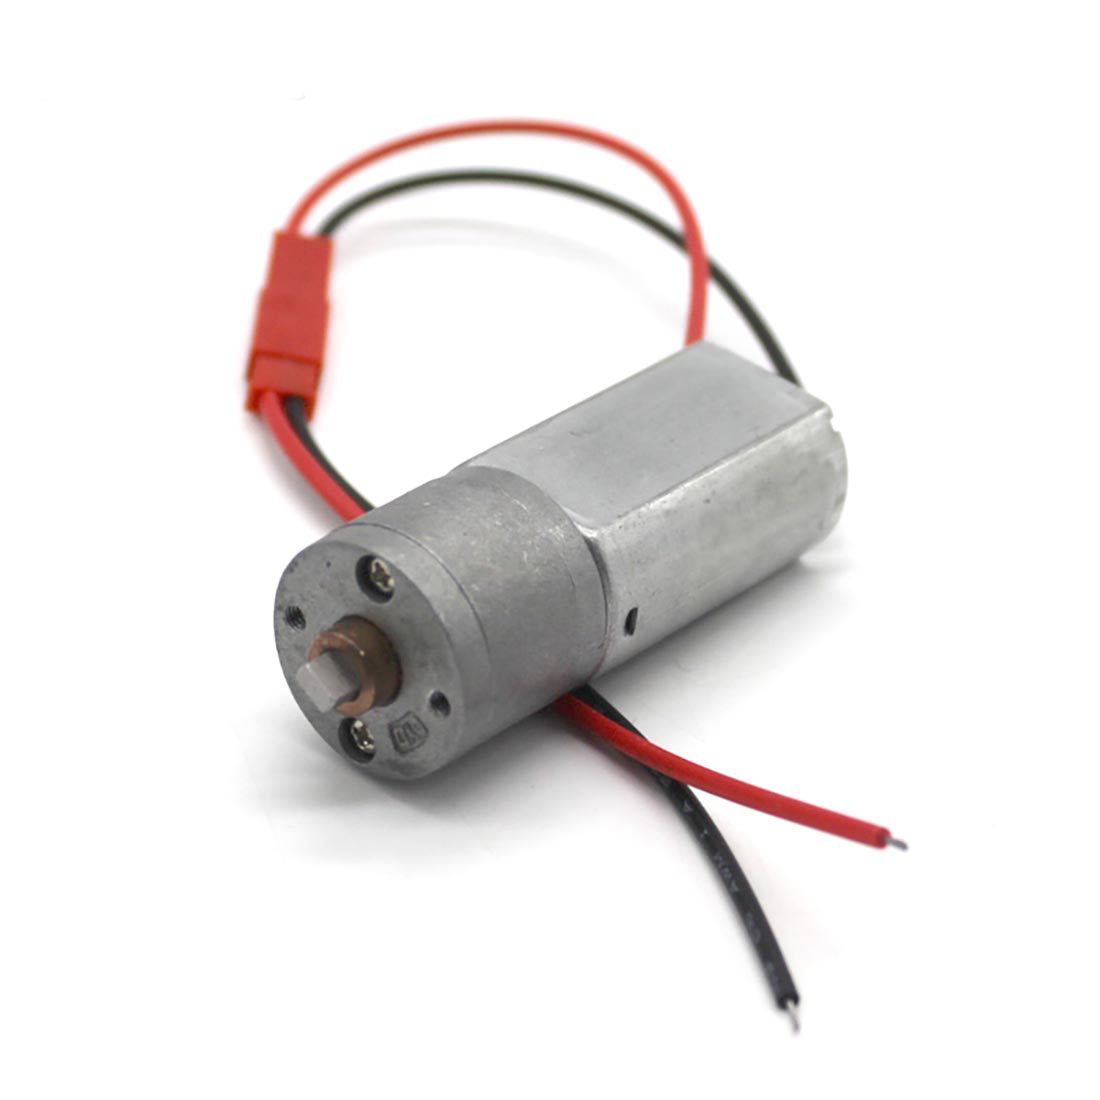 Feichao Iron Shell 180 Gear Motor (JST line) DIY Robot Parts Technology  Model Micro DC Motor